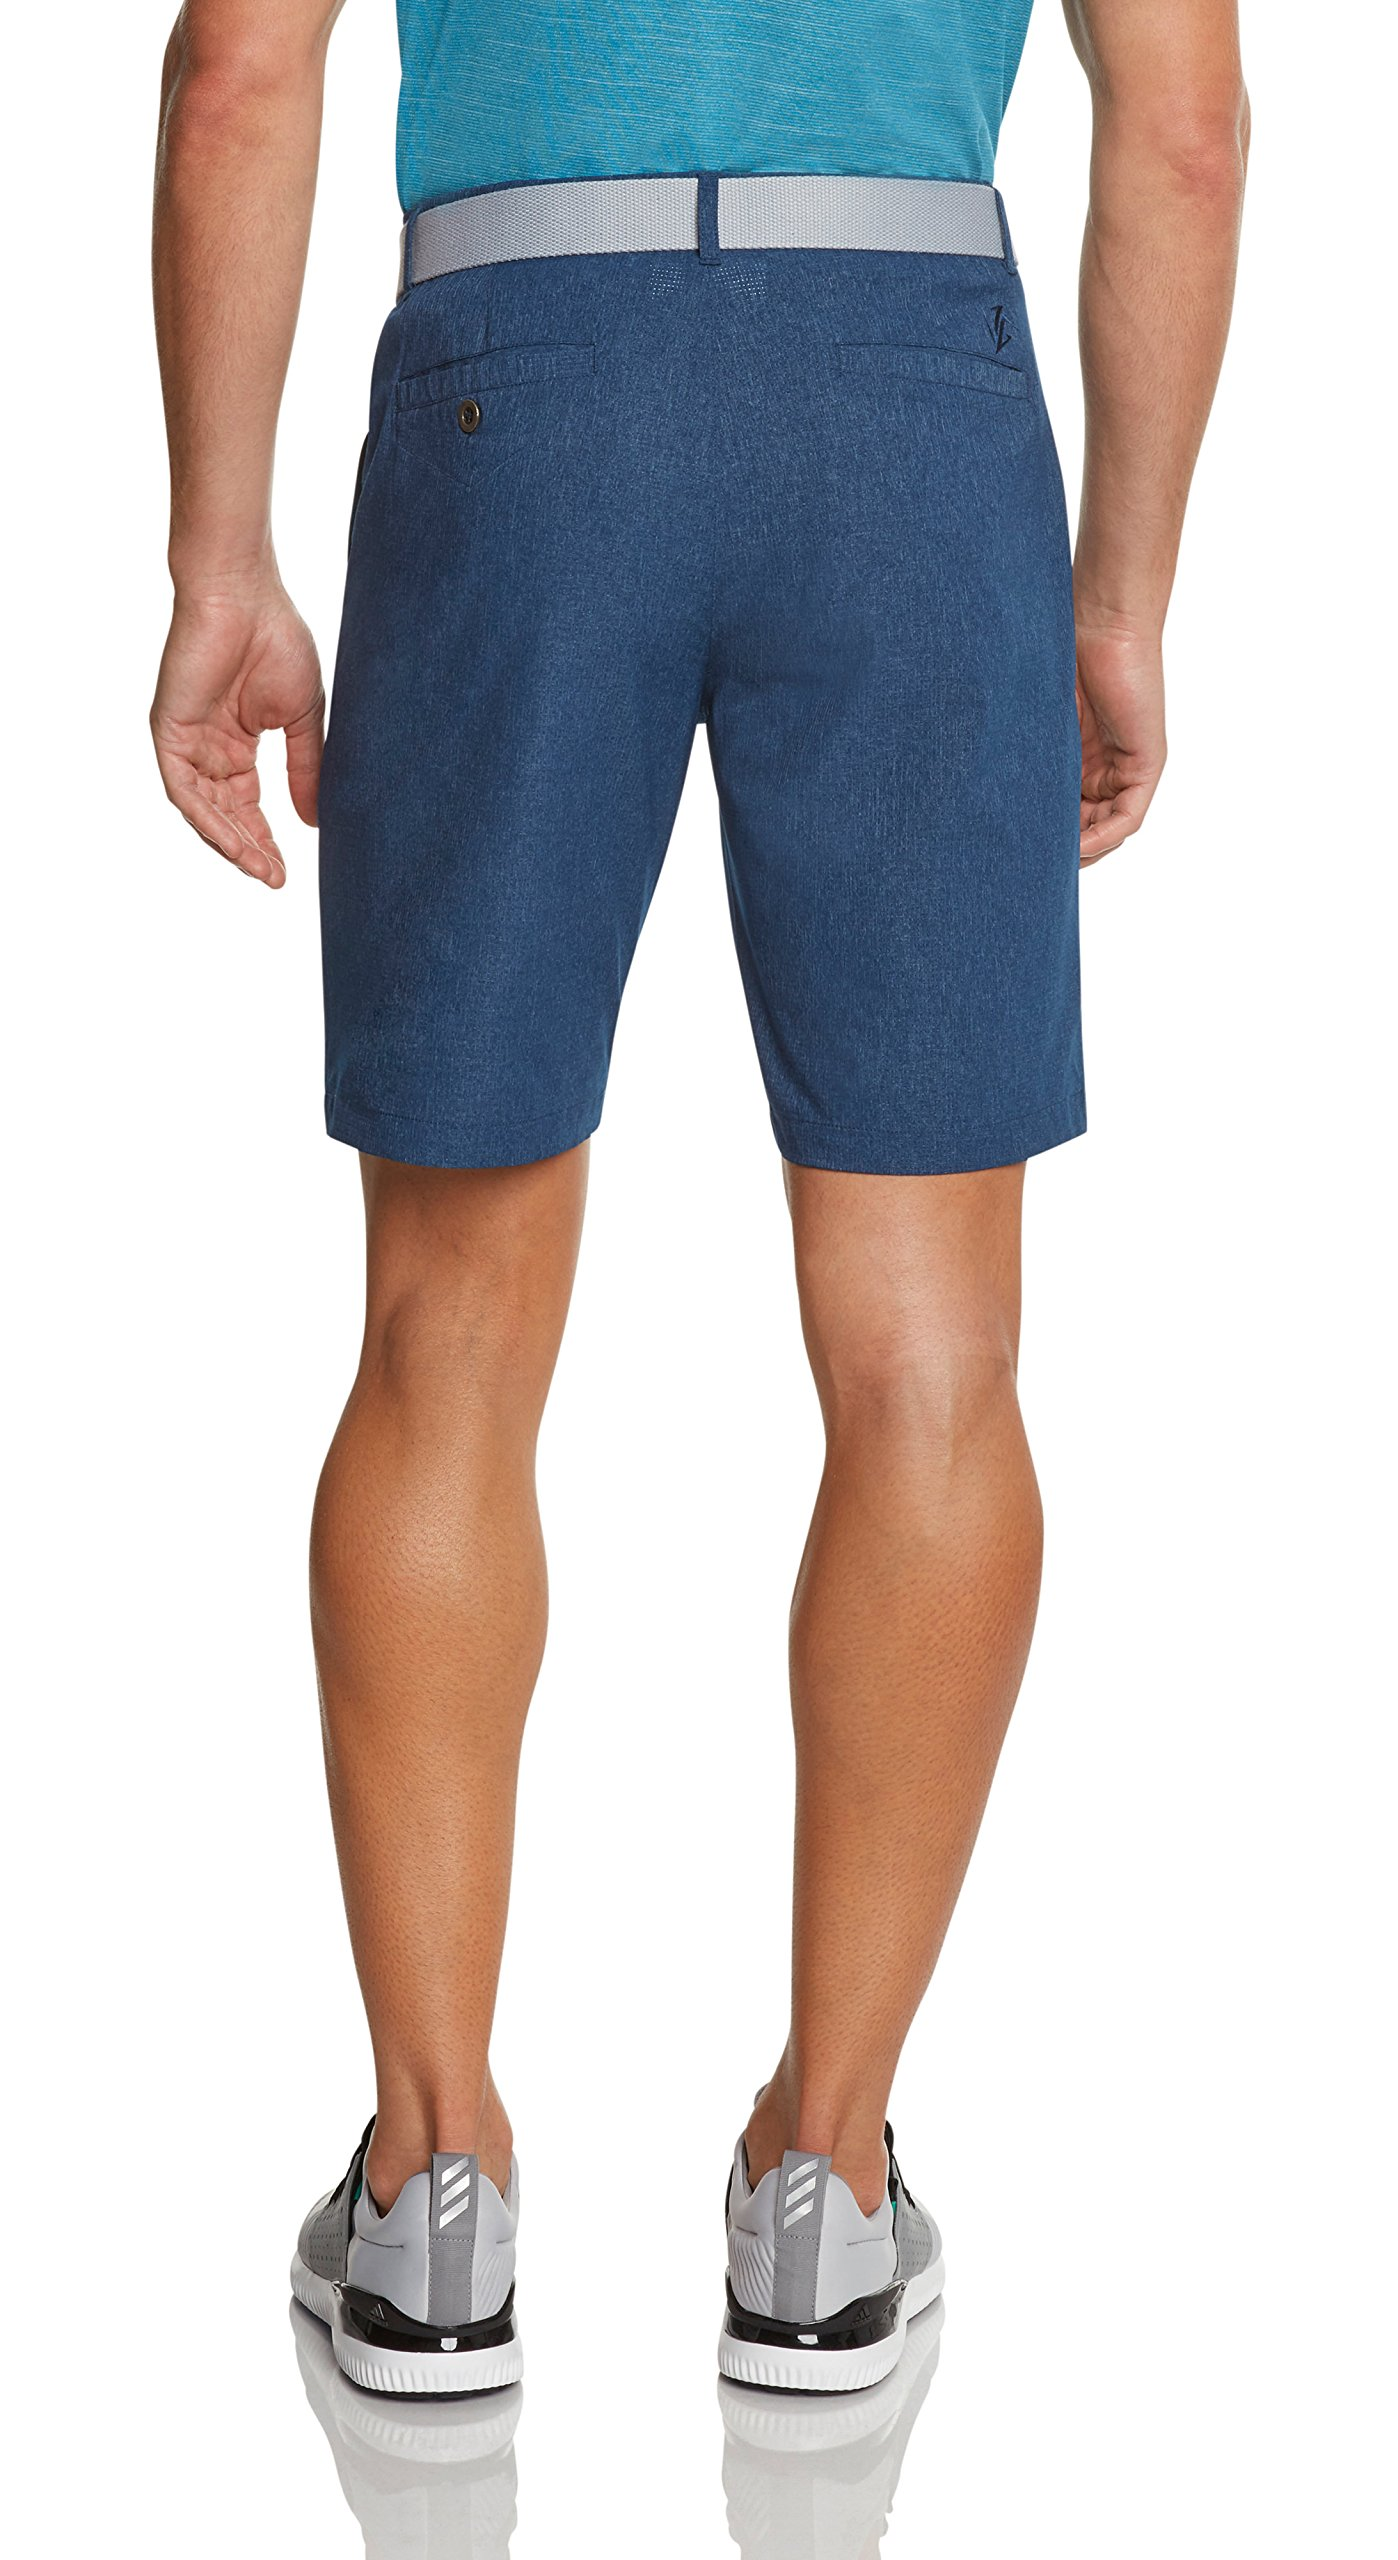 Jolt Gear Dry Fit Golf Shorts for Men – Casual Mens Shorts Moisture Wicking - Men's Chino Shorts with Elastic Waistband by Jolt Gear (Image #3)